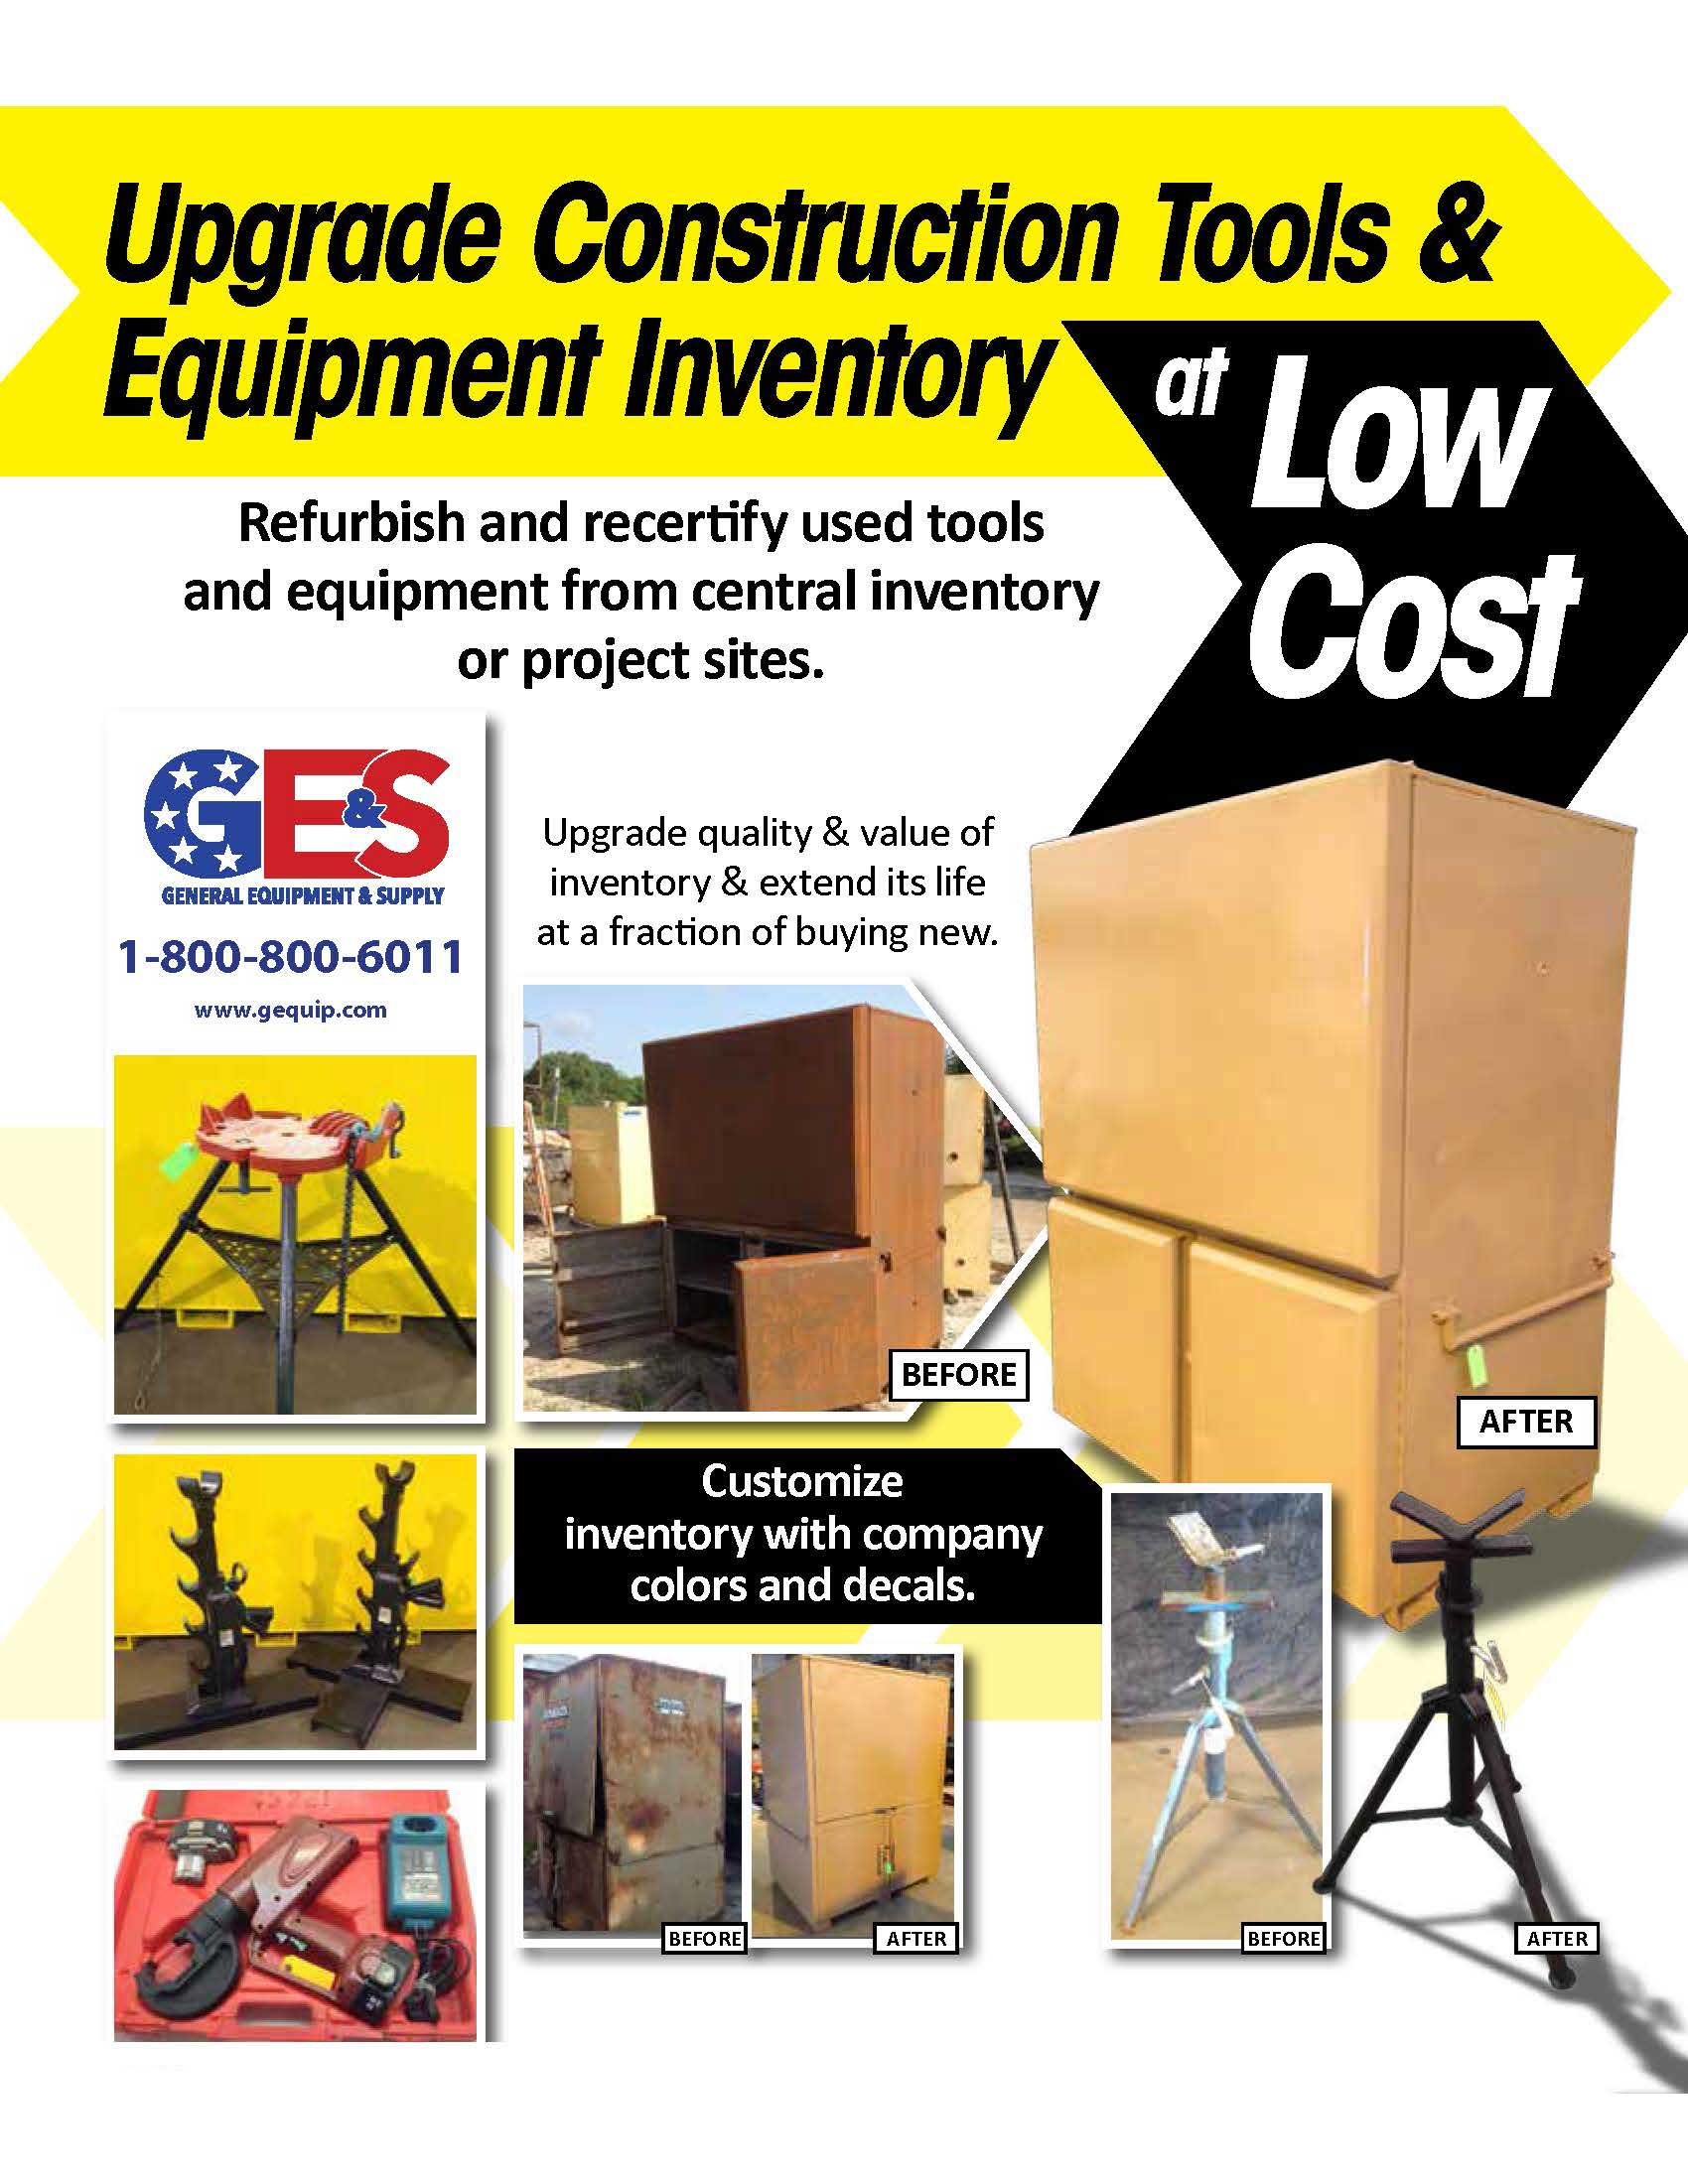 Upgrade your construction tools & equipment